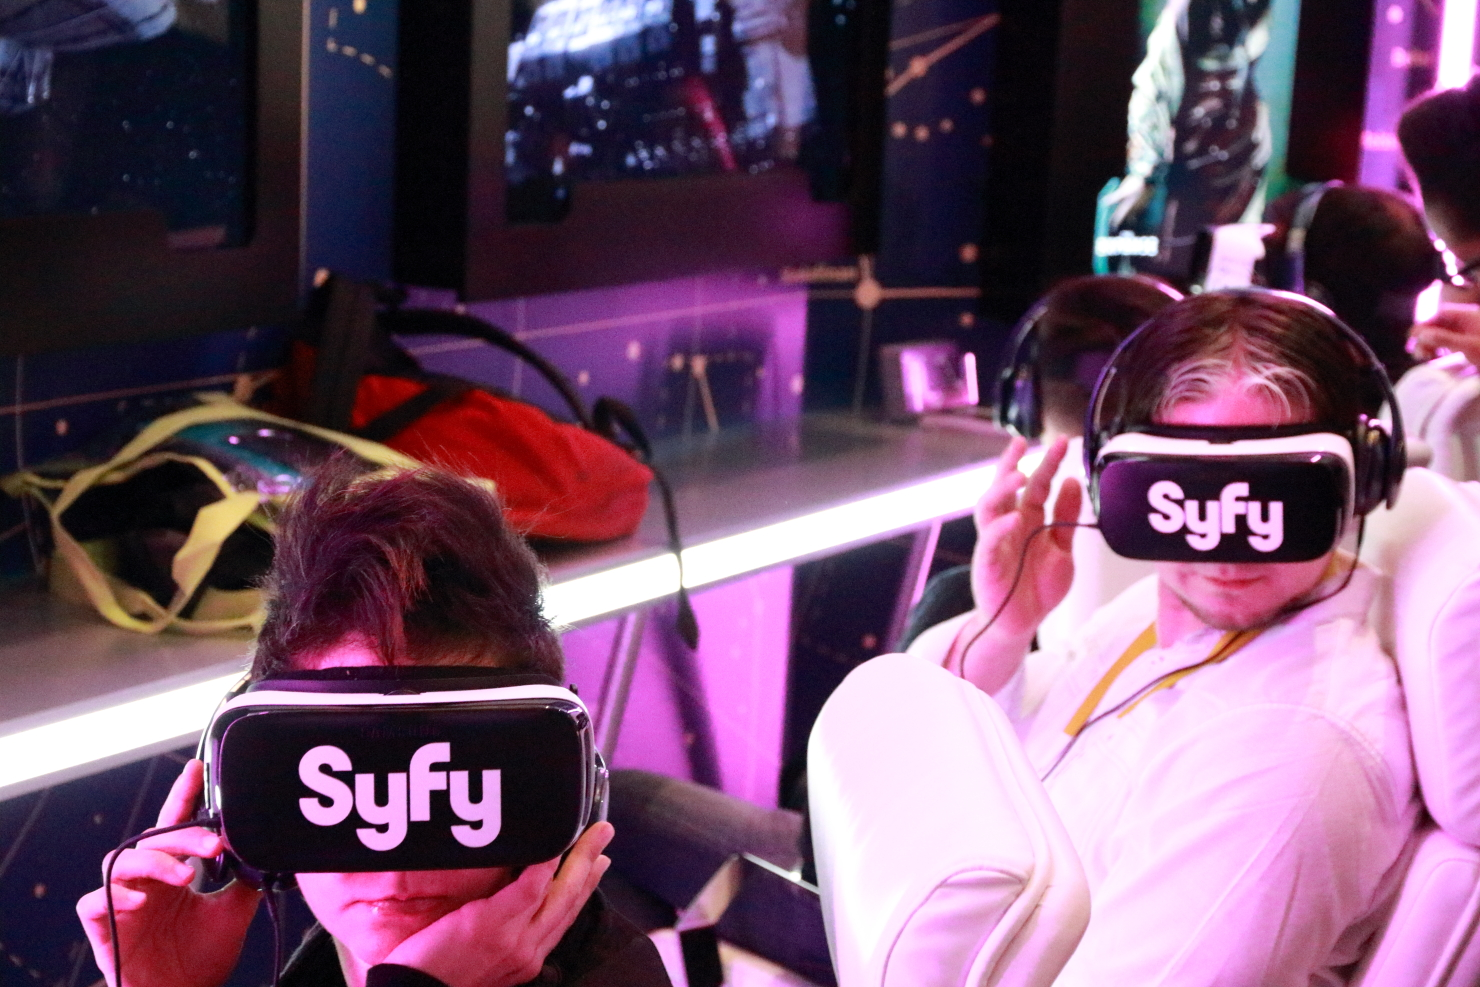 If watching The Expanse on TV is not enough, fans can get a virtual reality taste of the spaceships. (photo by Joao-Pierre S. Ruth)